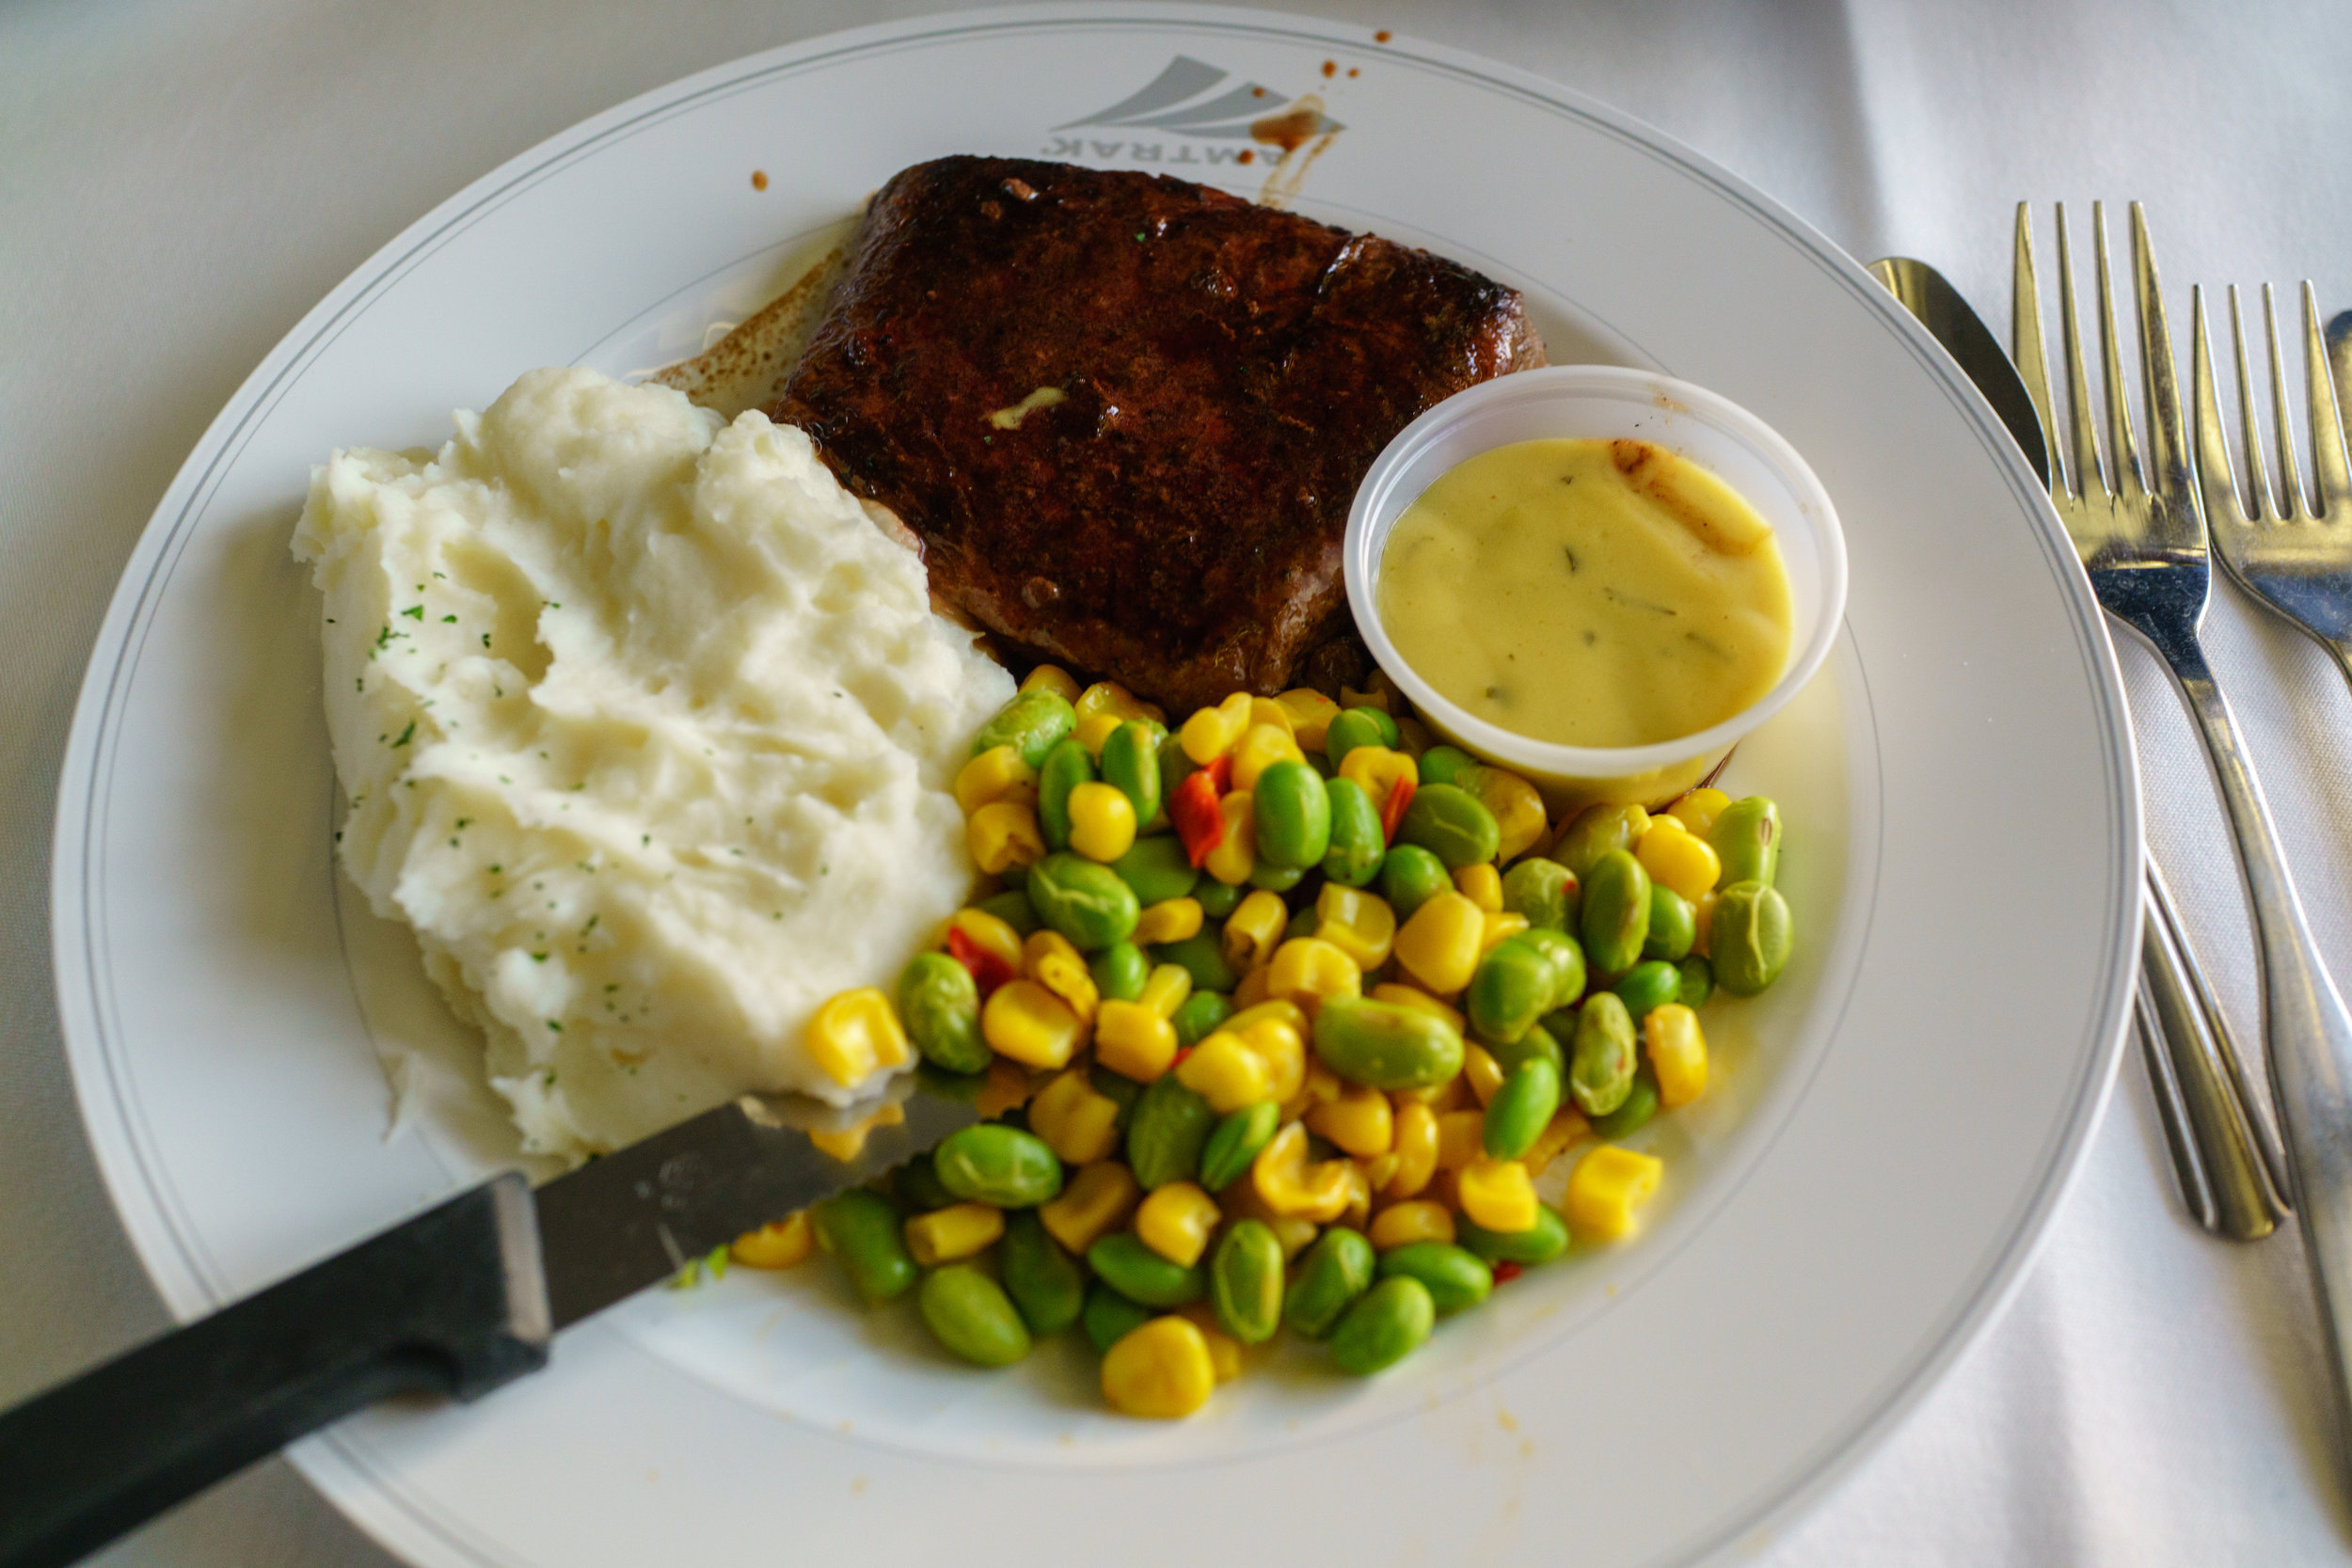 The Amtrak Signature Steak for dinner